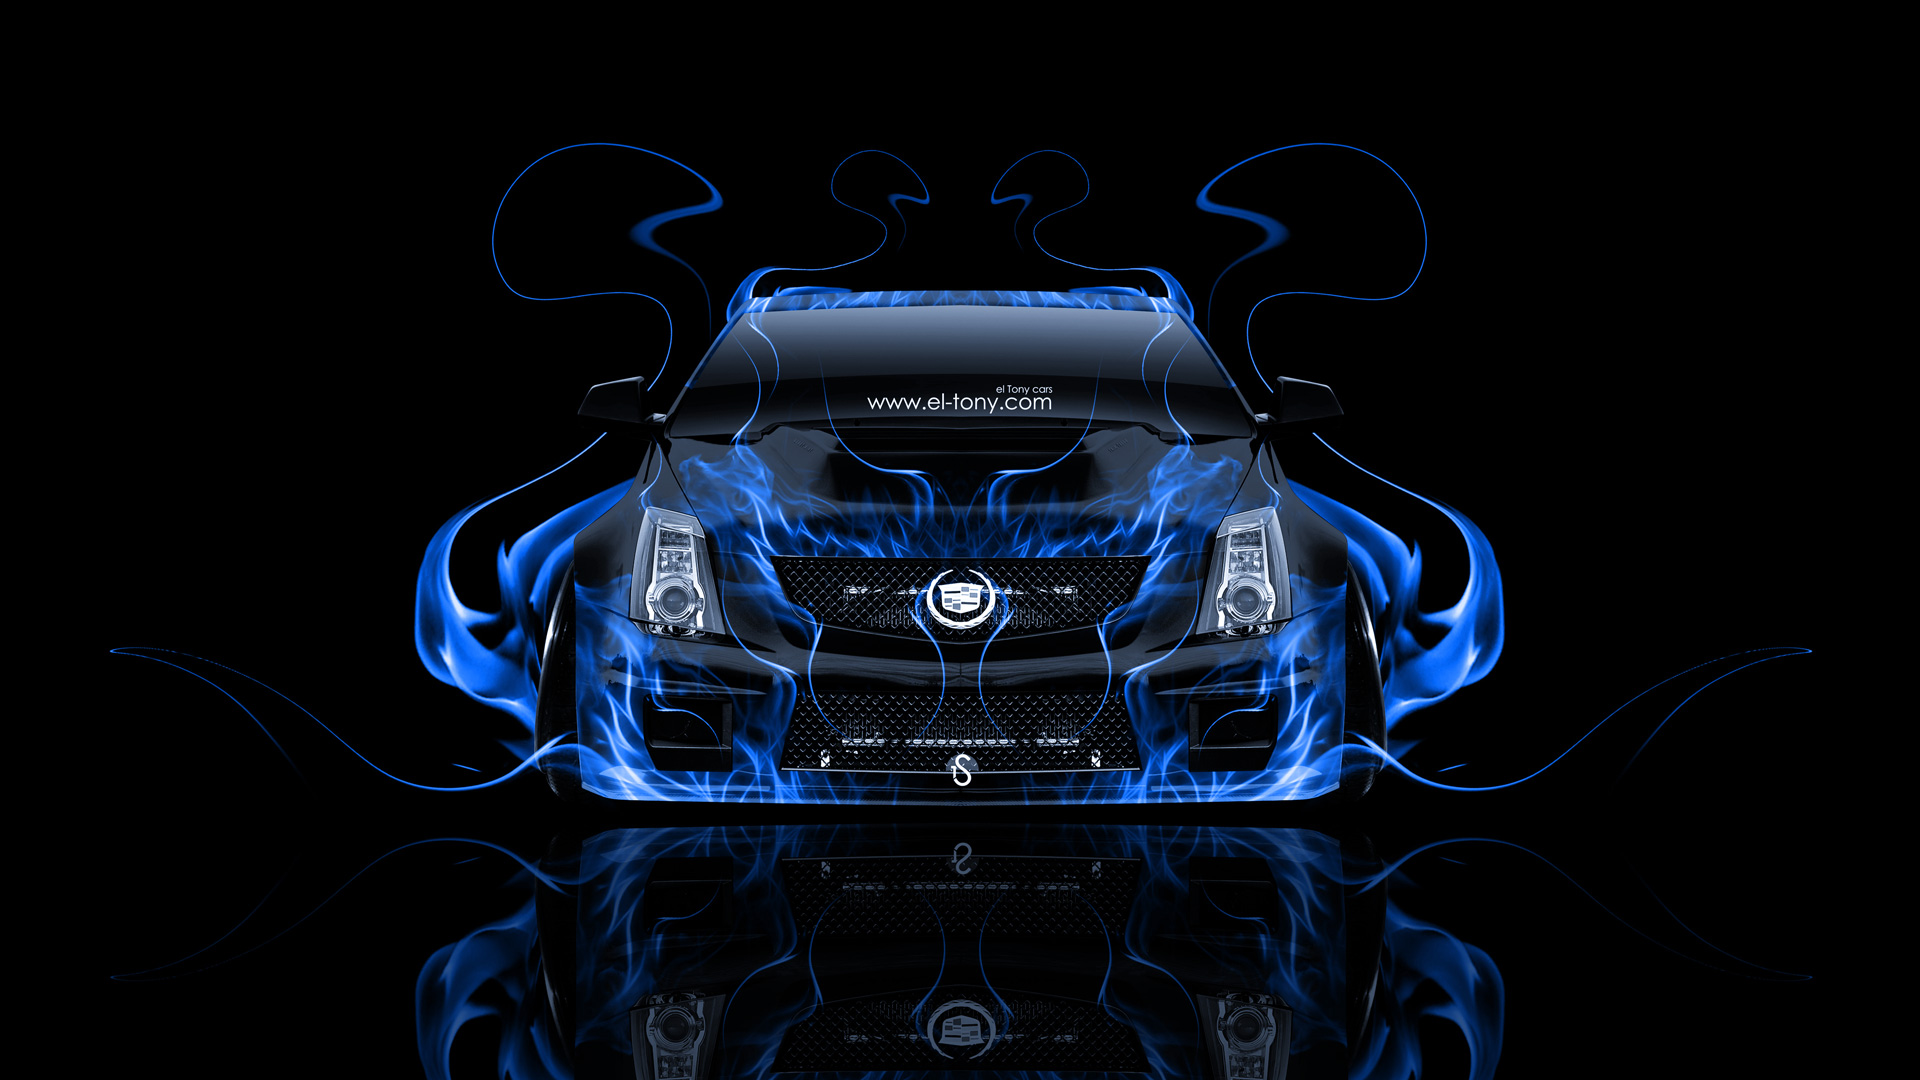 Audi Black Cars Wallpapers Cadillac Cts V Hennessey Tuning Front Fire Car 2014 El Tony